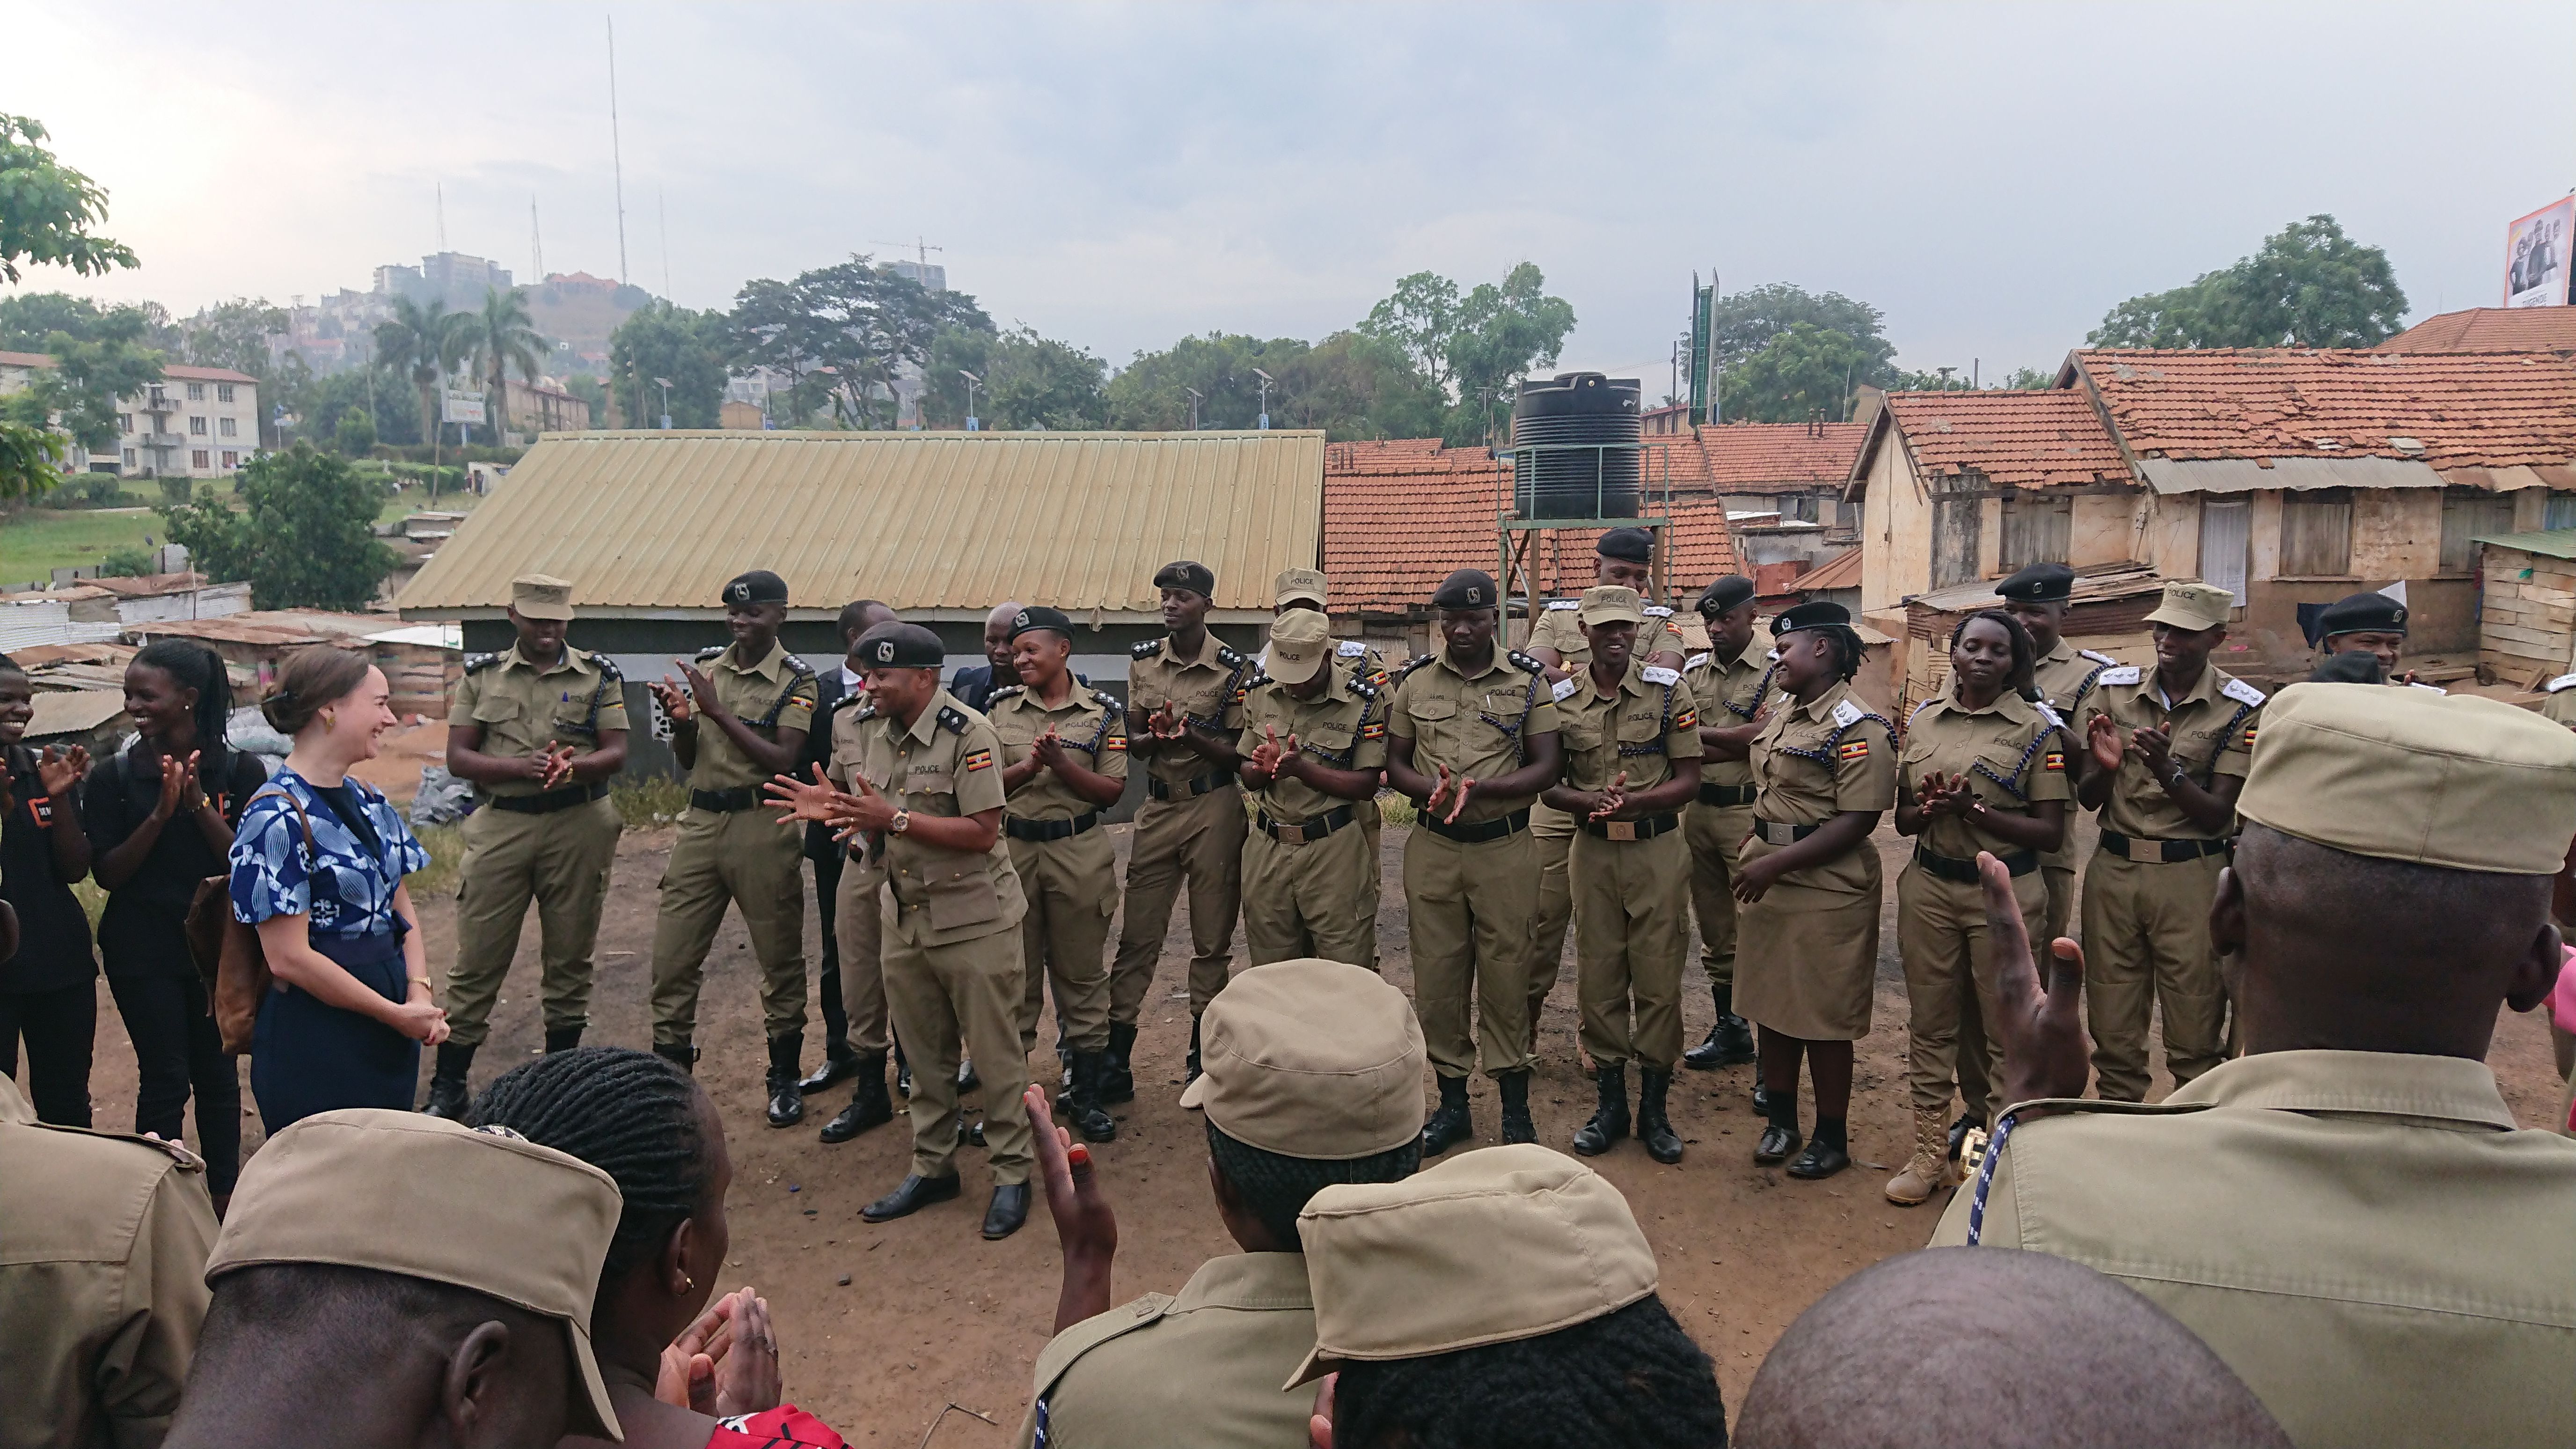 From data-to-action: how can we close the feedback loop for Ugandan police services?